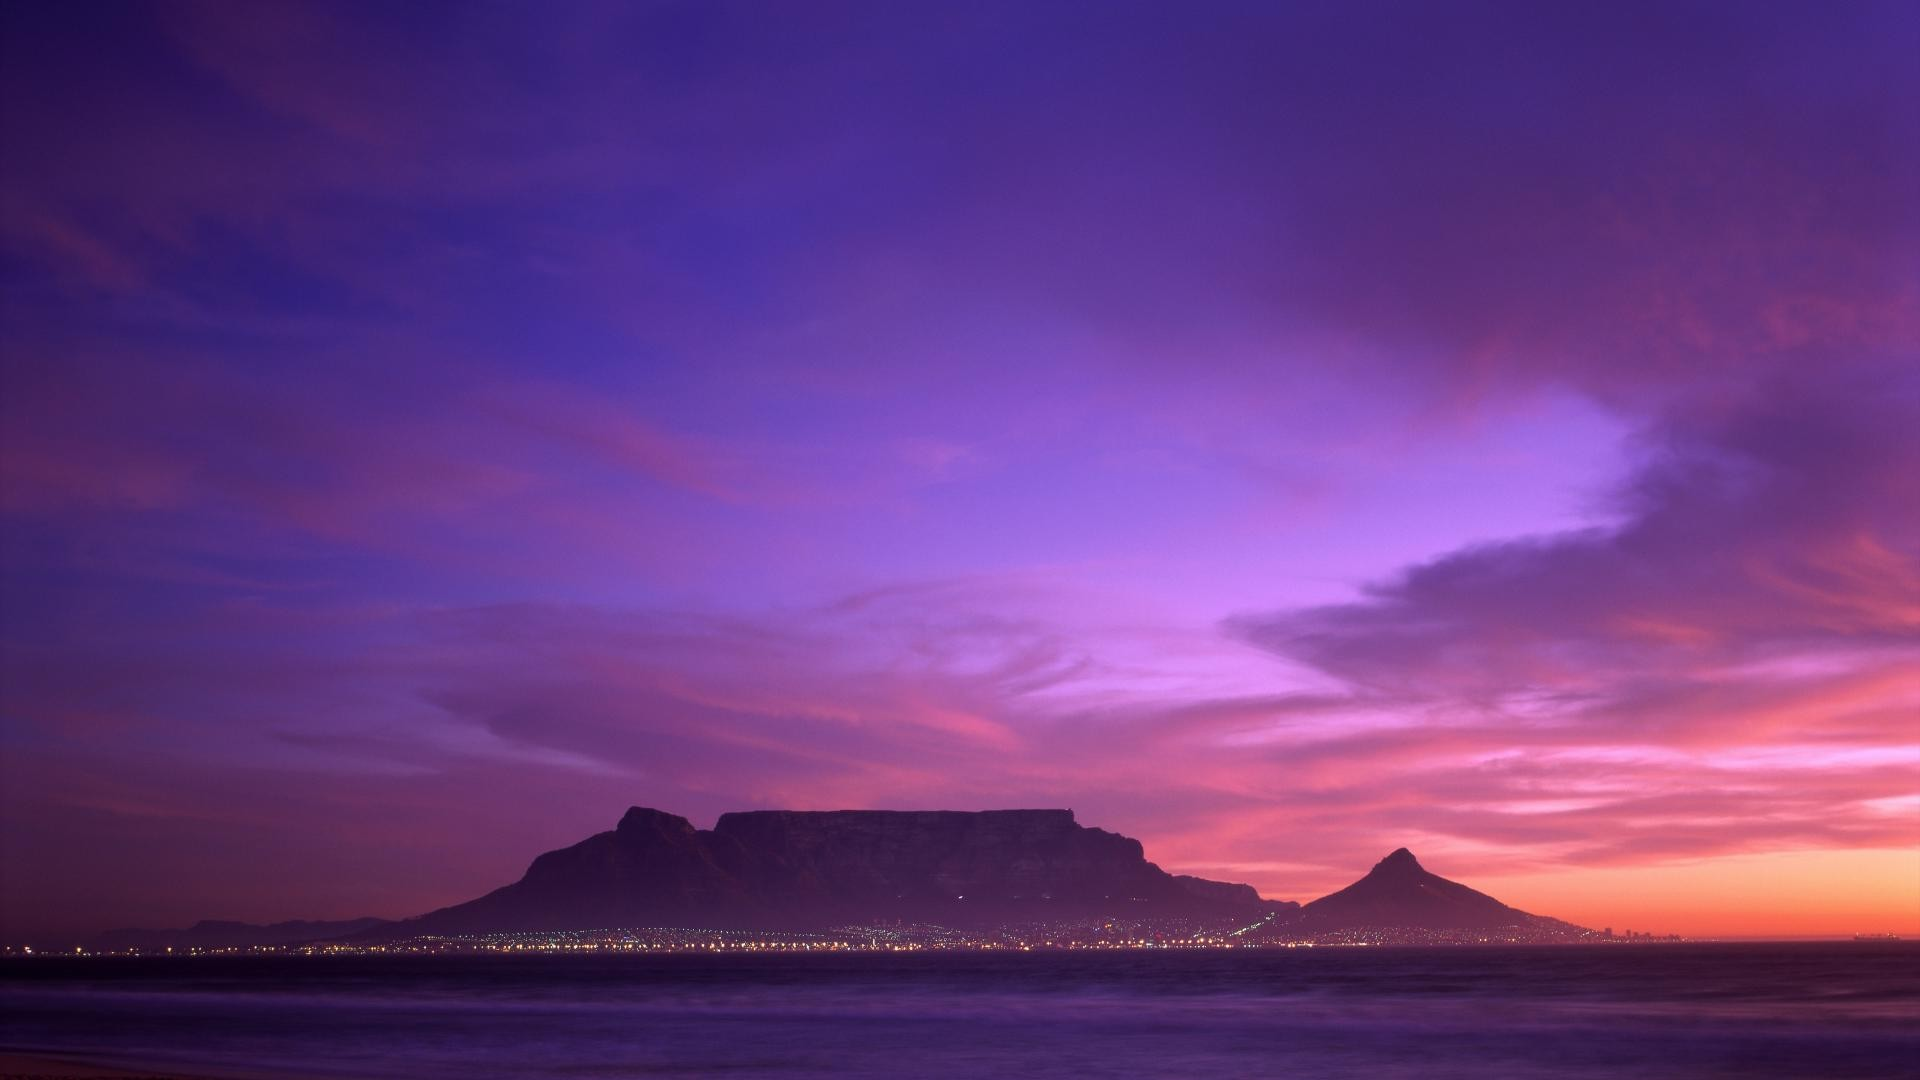 The Images of South Africa Africa 1920x1080 HD Wallpaper 1920x1080